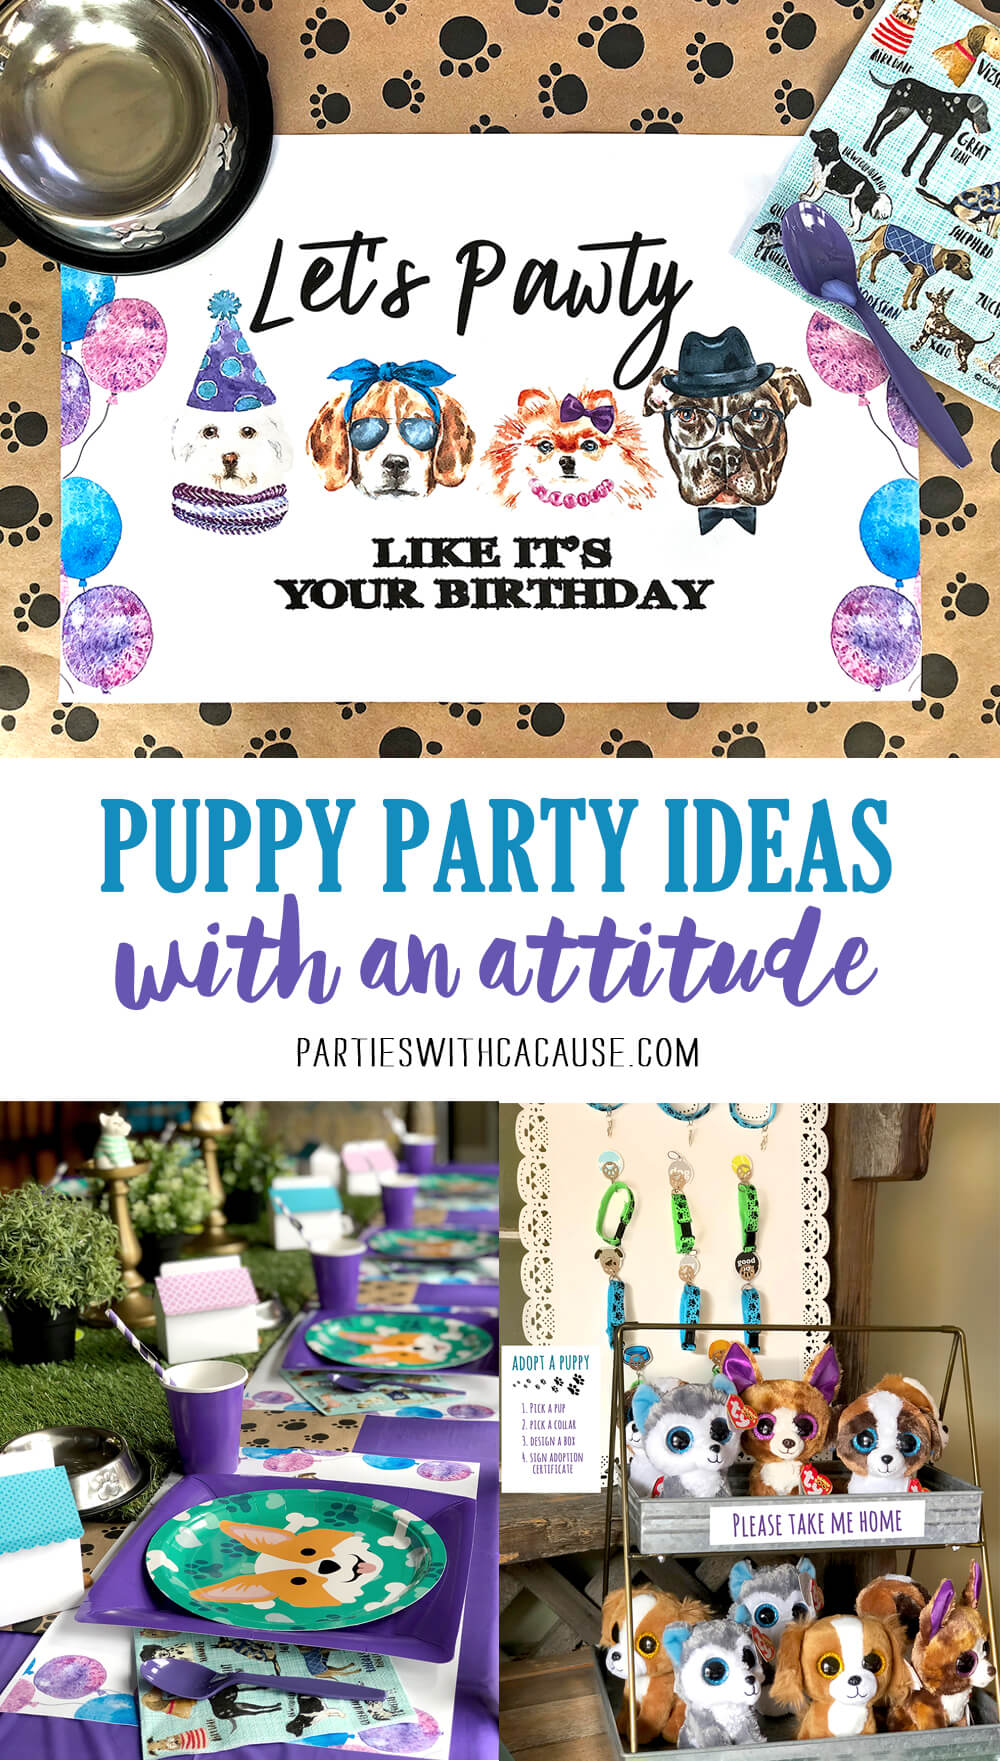 Dog Themed Puppy Birthday Party Ideas with attitude